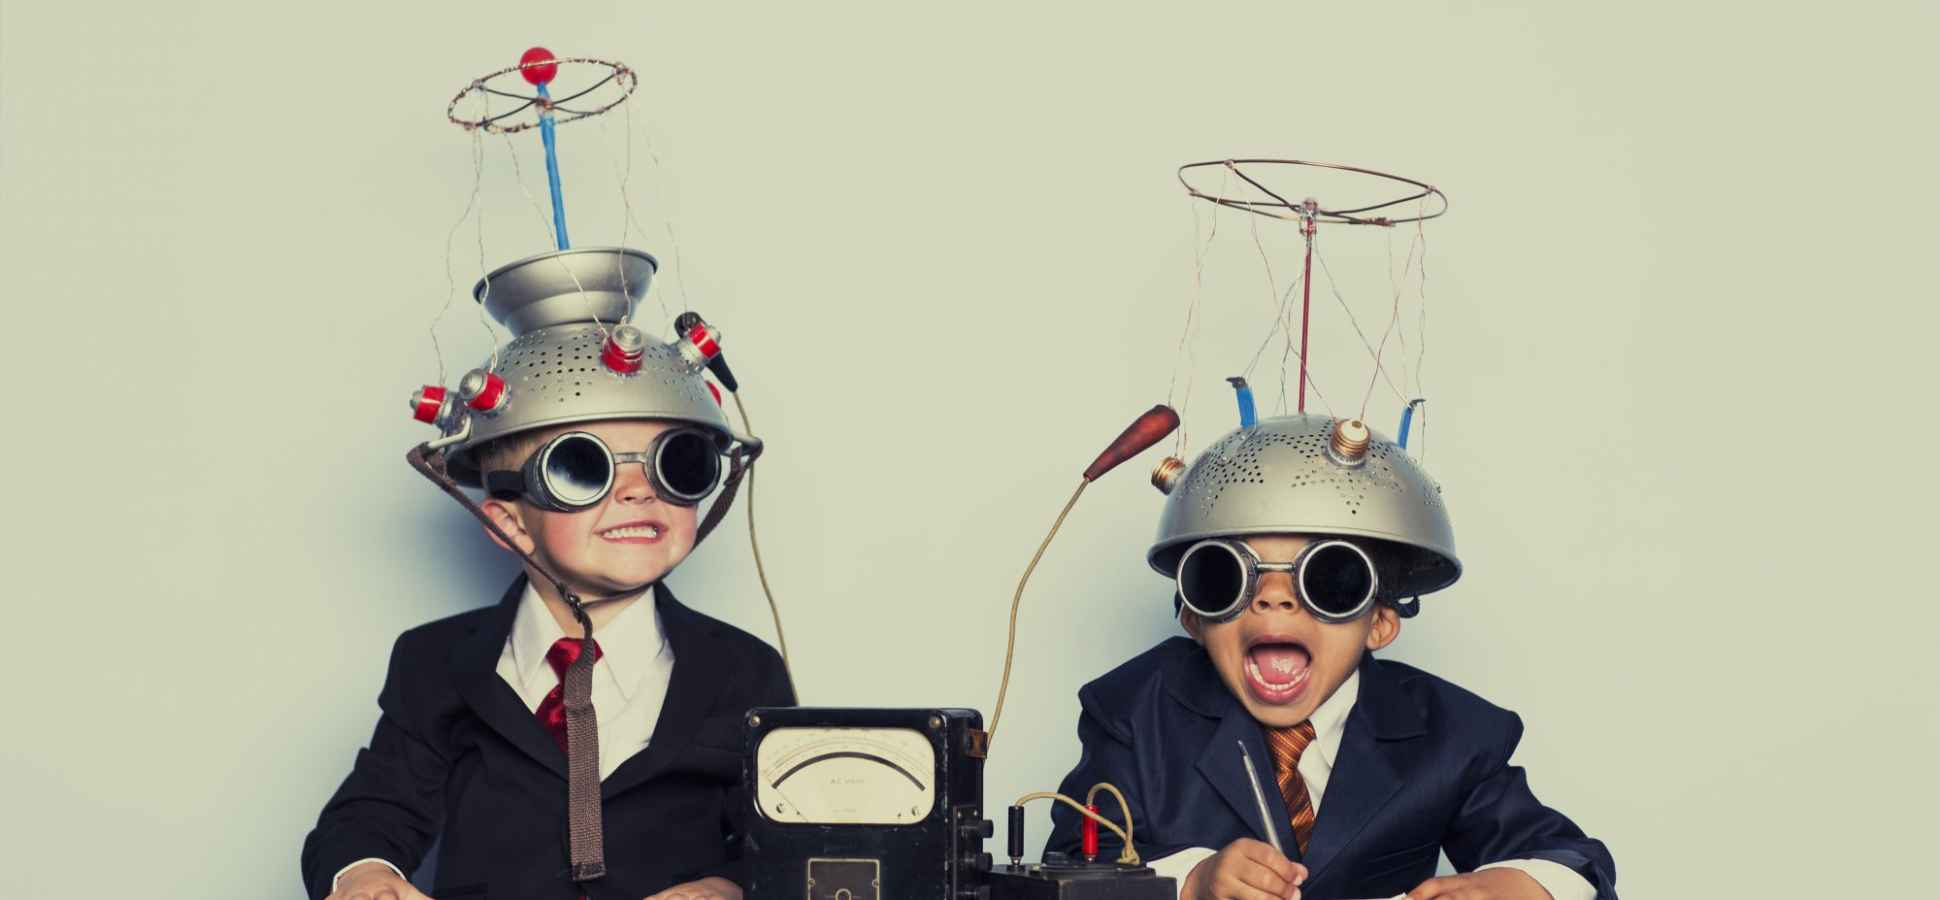 How to Boost Your Team's Creativity, According to Science